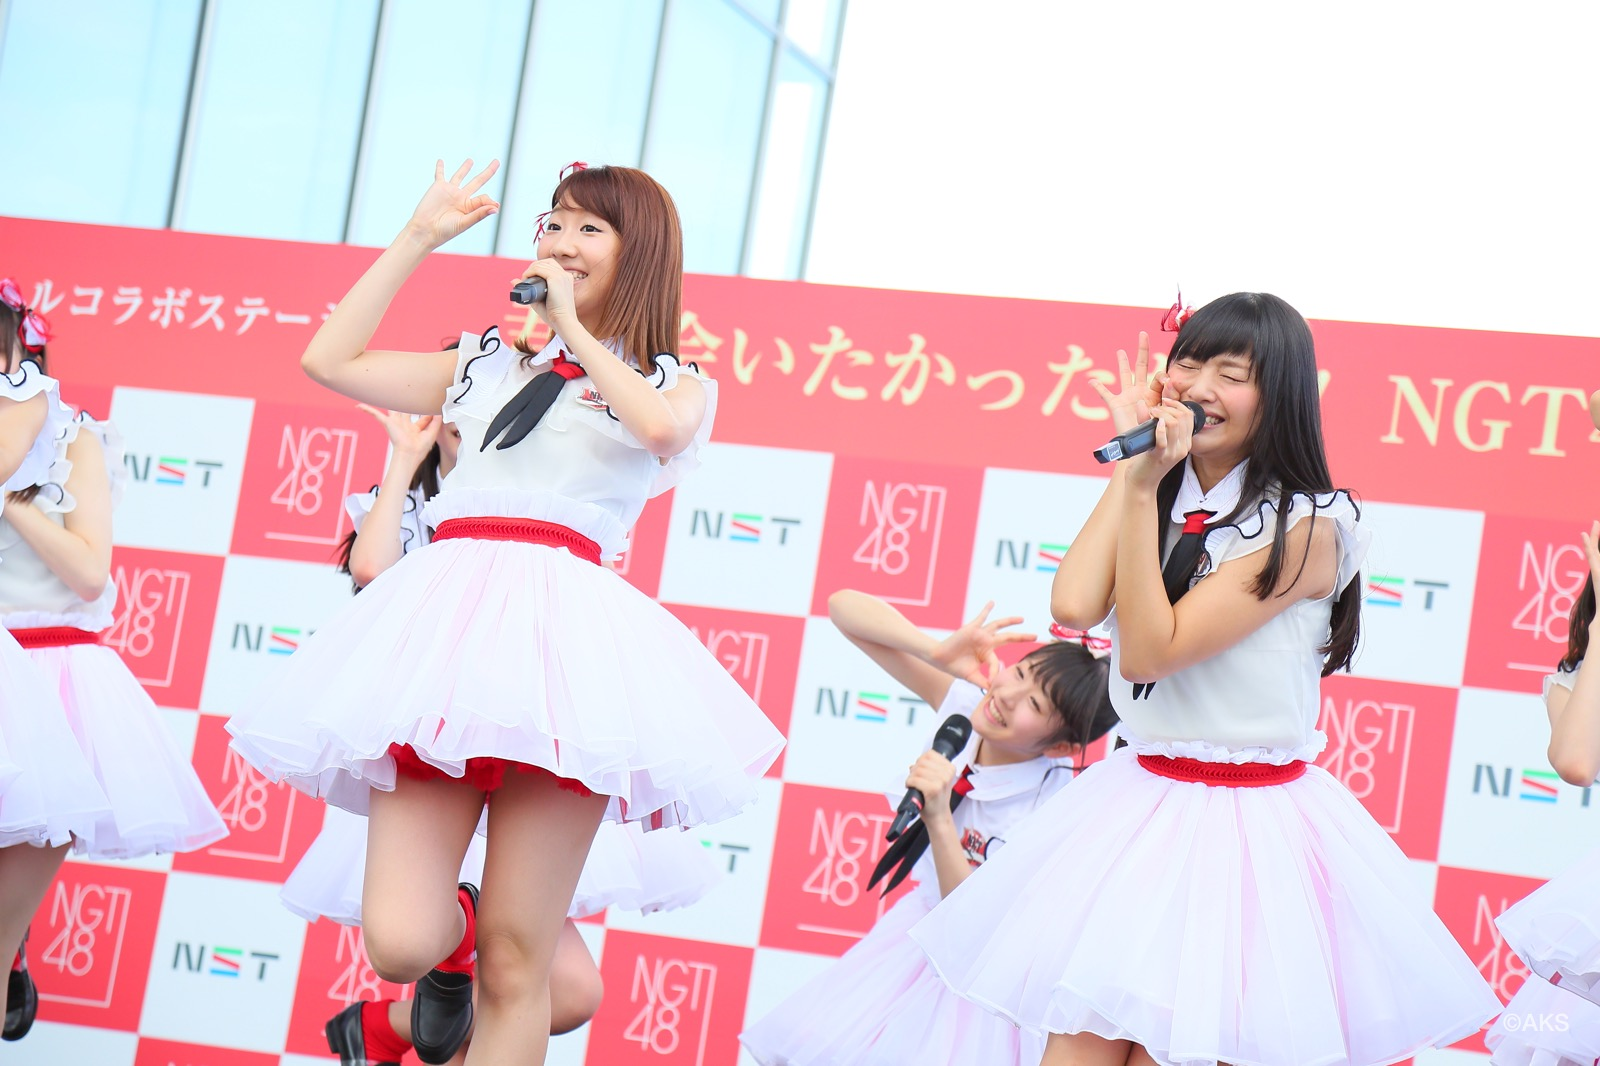 NGT48 featured